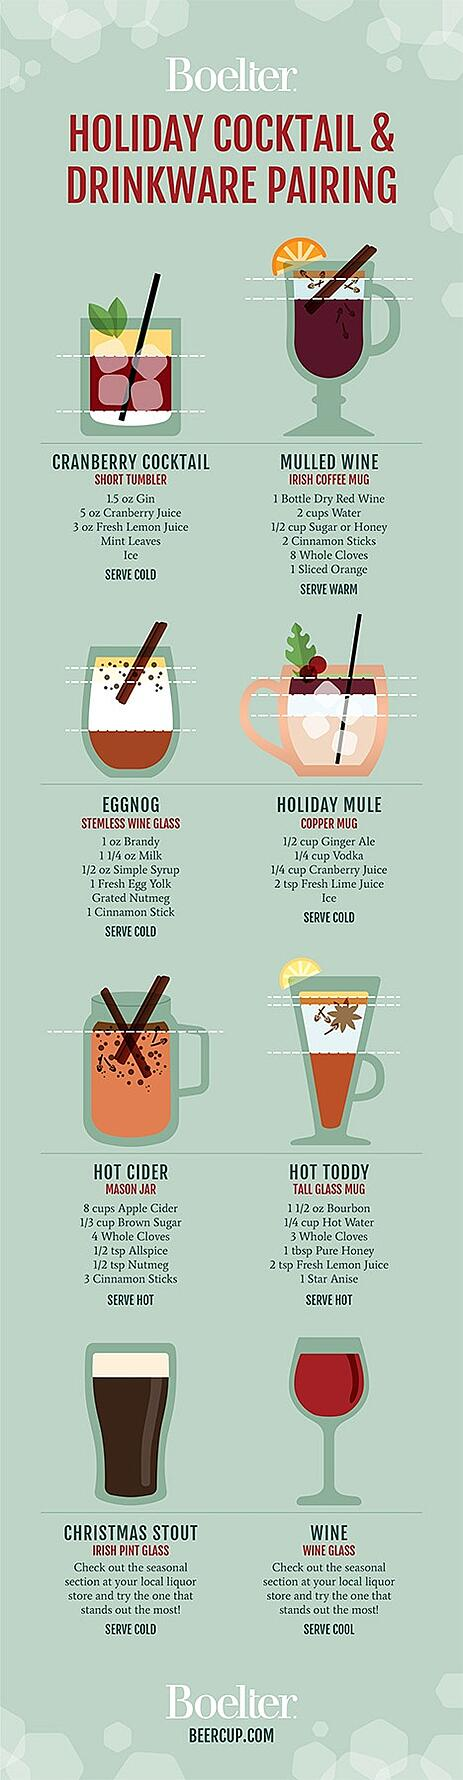 Holiday Cocktail & Drinkware Pairing Infographic